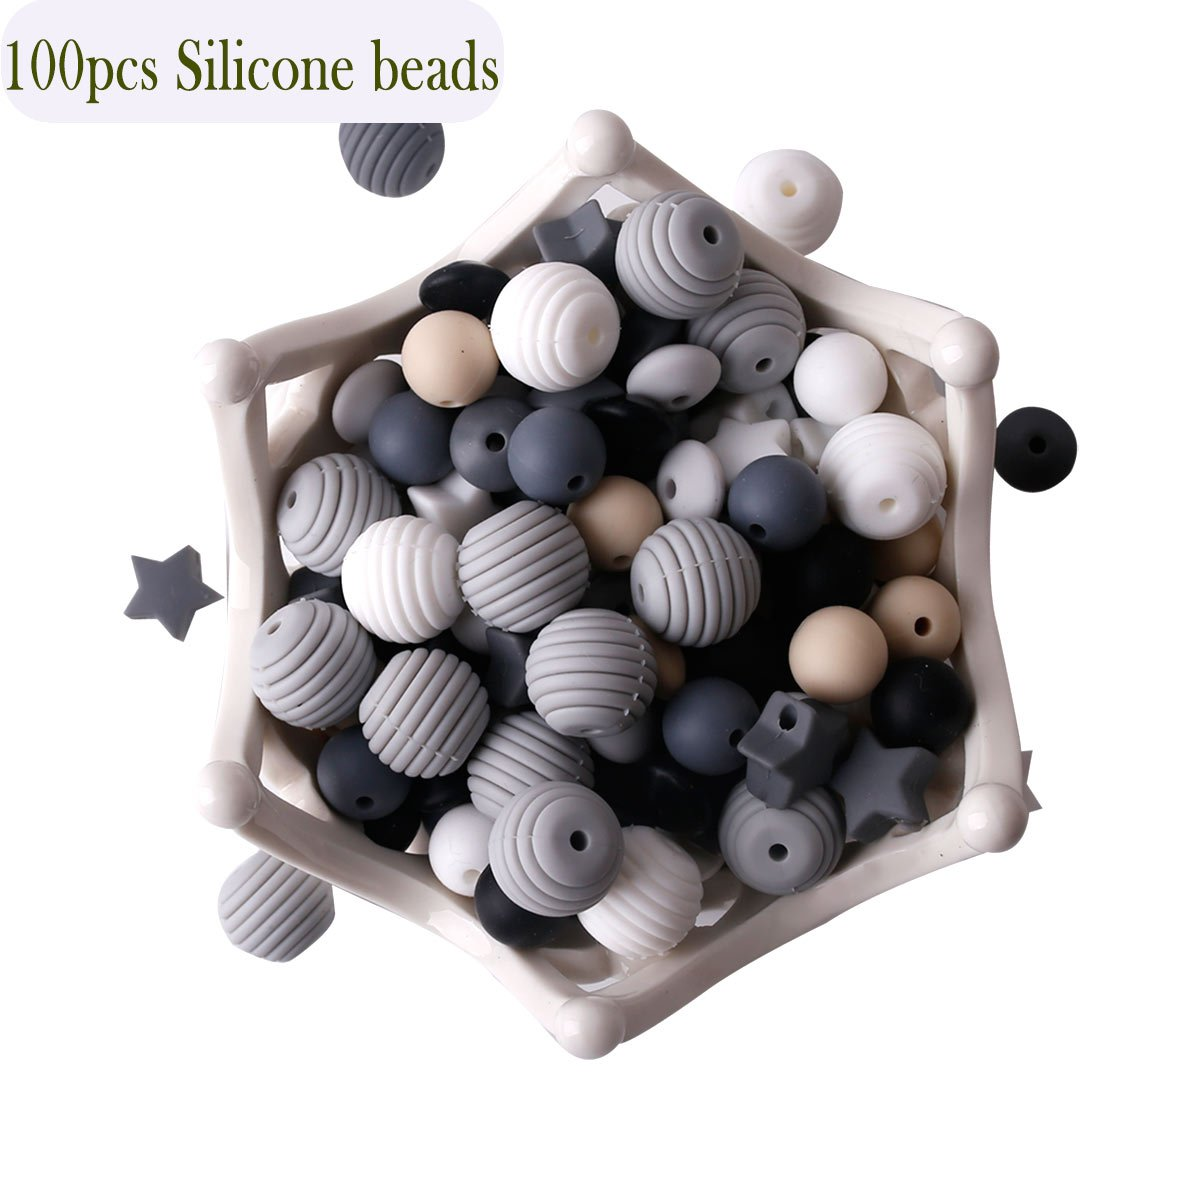 Baby Silicone Teether Beads 100pcs BPA Free Food Grade Teething Beads Black and White Series DIY Jewelry Chewable Nursing Necklace Accessories by HAO JIE